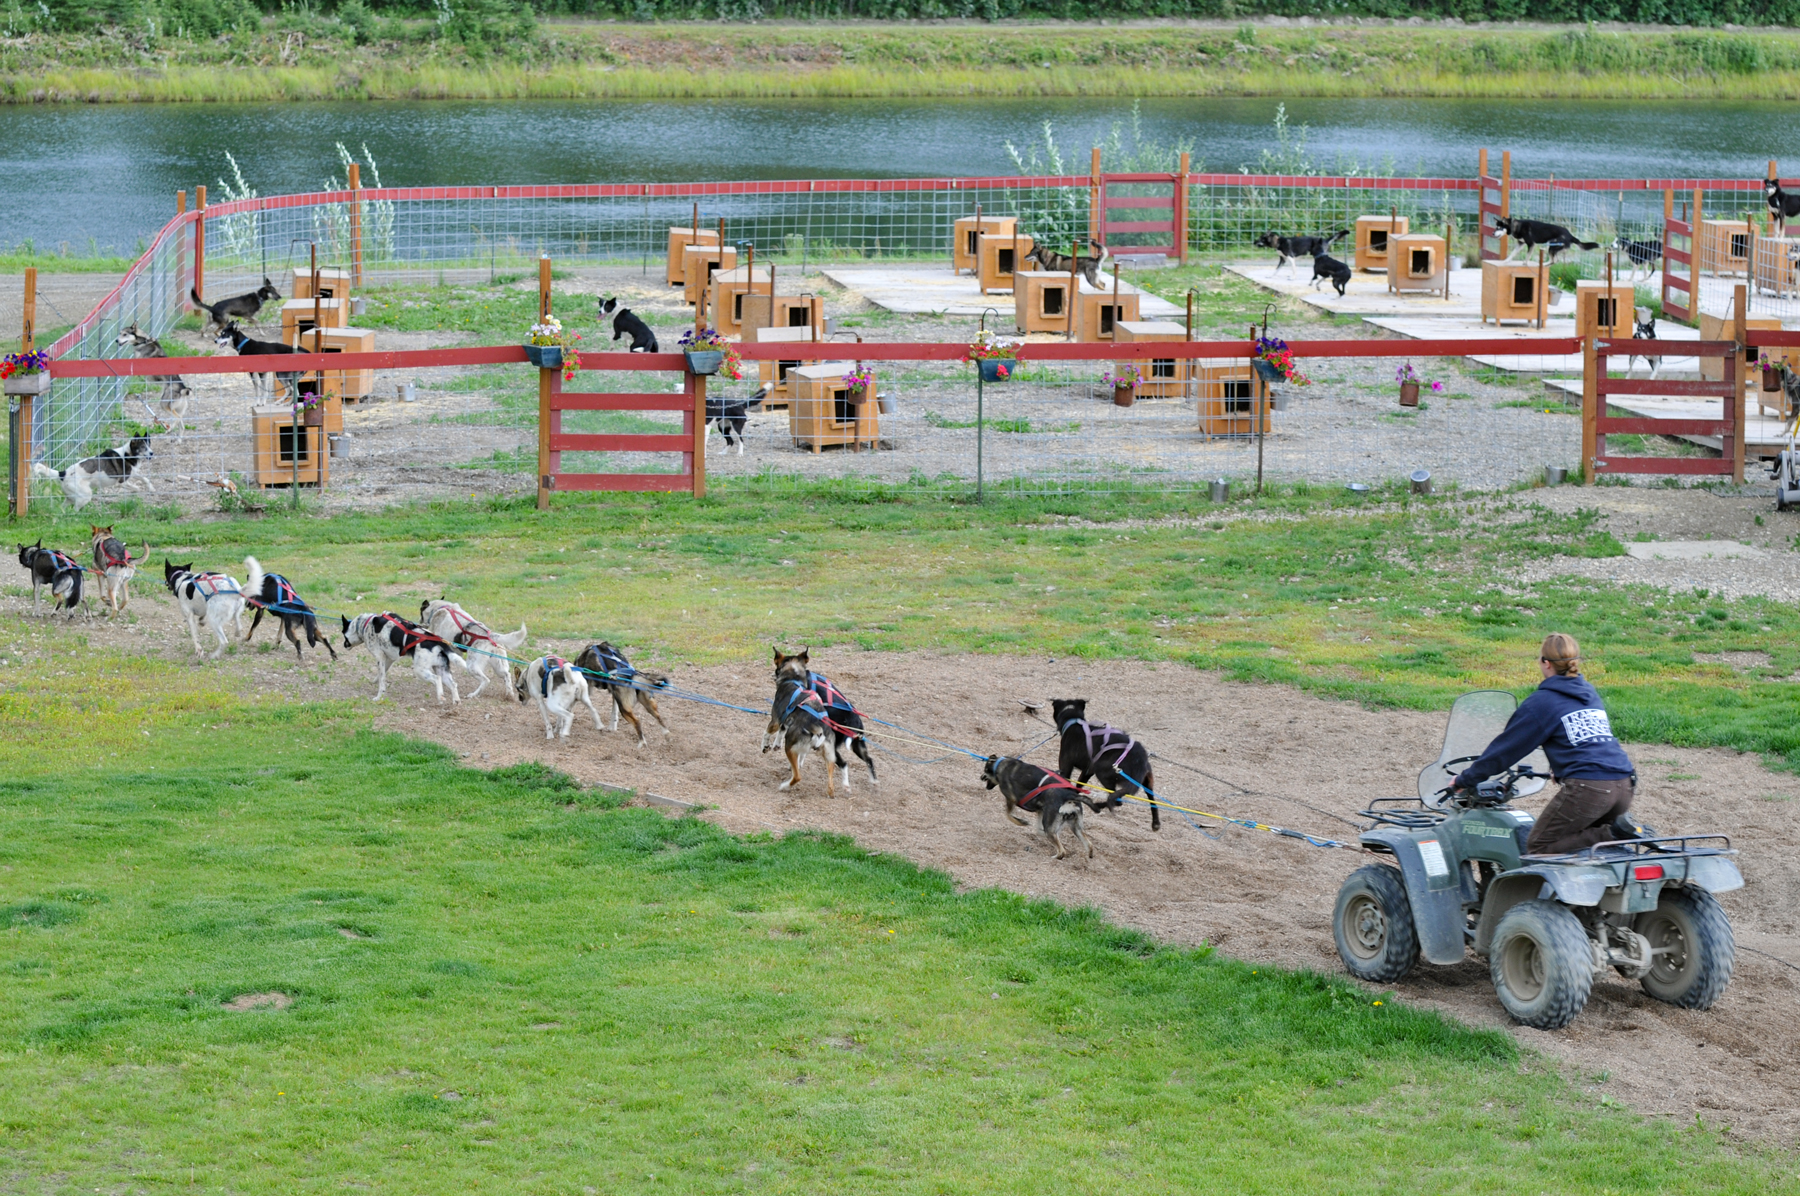 09-Iditarod-Traing-Fairbanksjpg